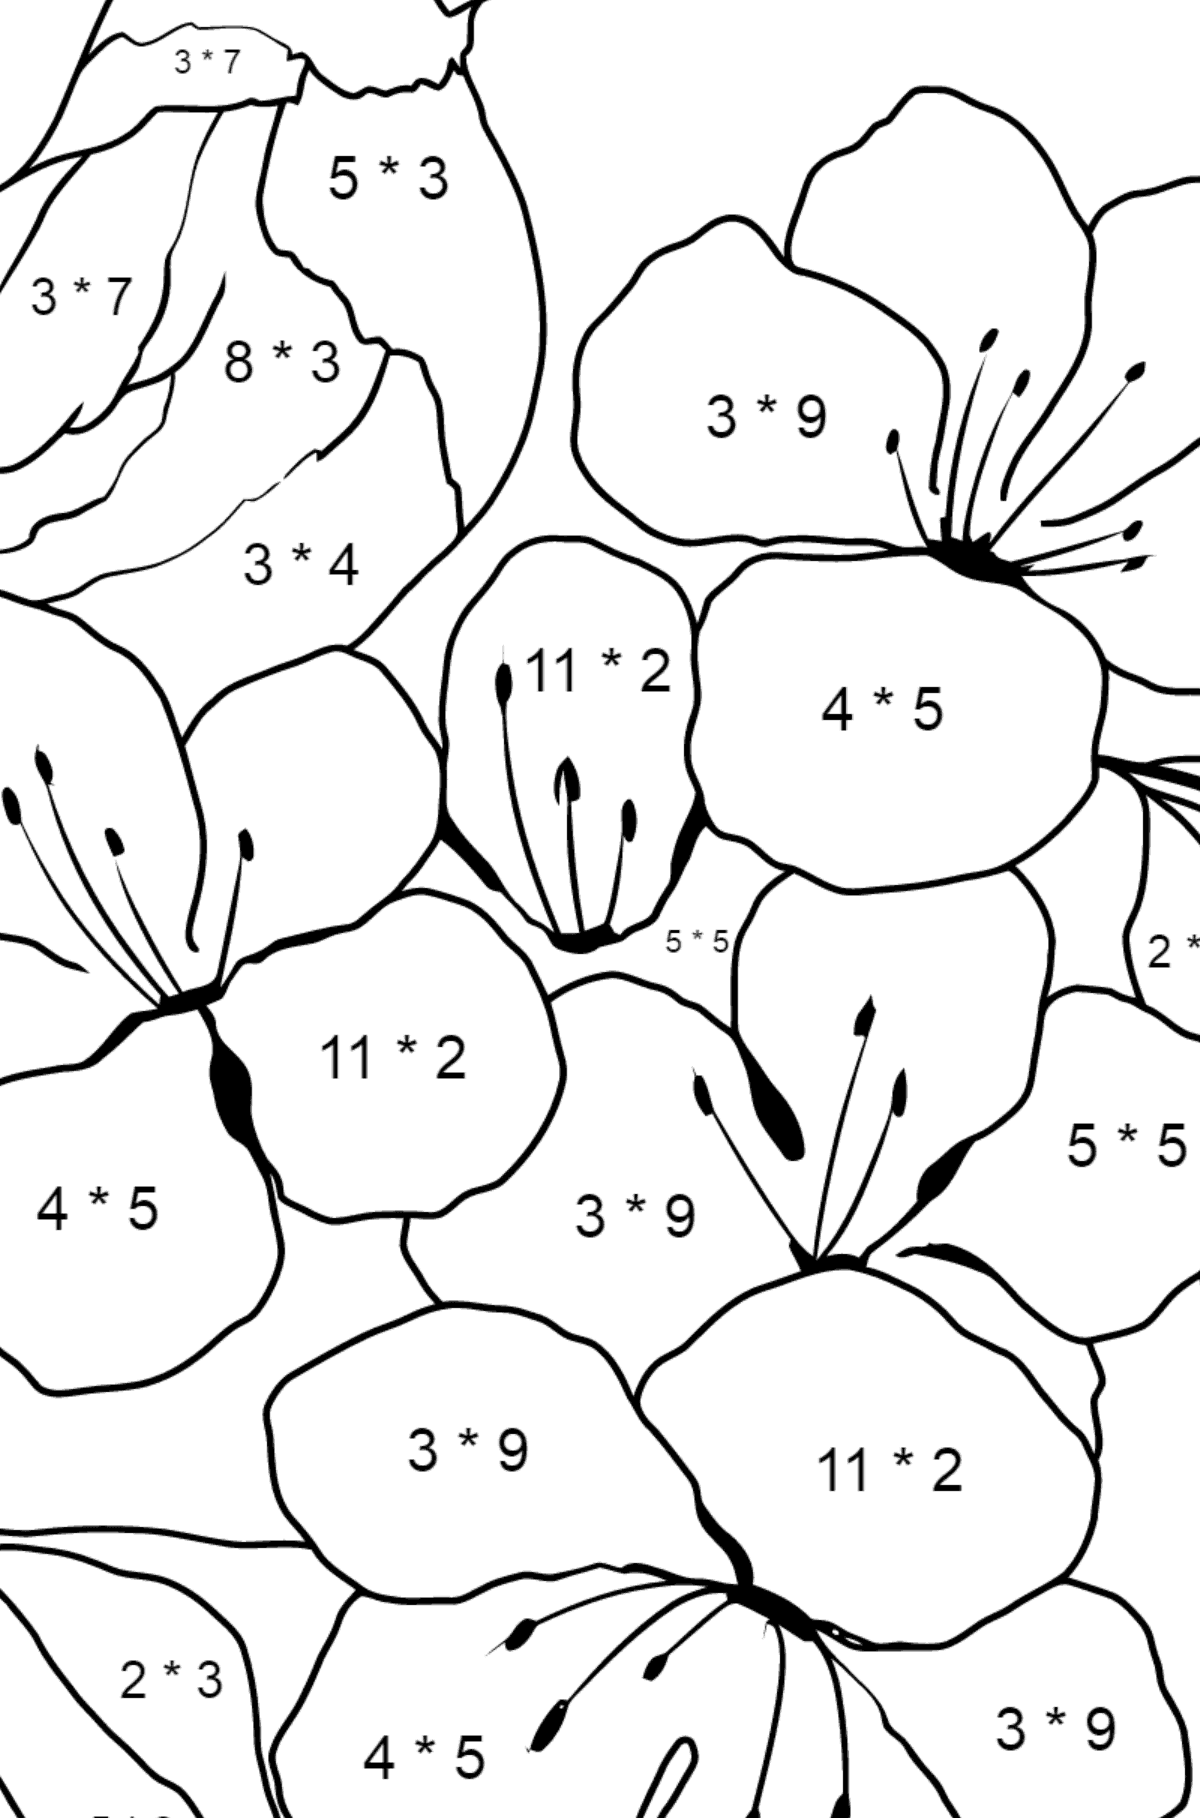 Summer Coloring Page - A Bird is Chirping on the Branch of an Apple Tree for Children  - Color by Number Multiplication